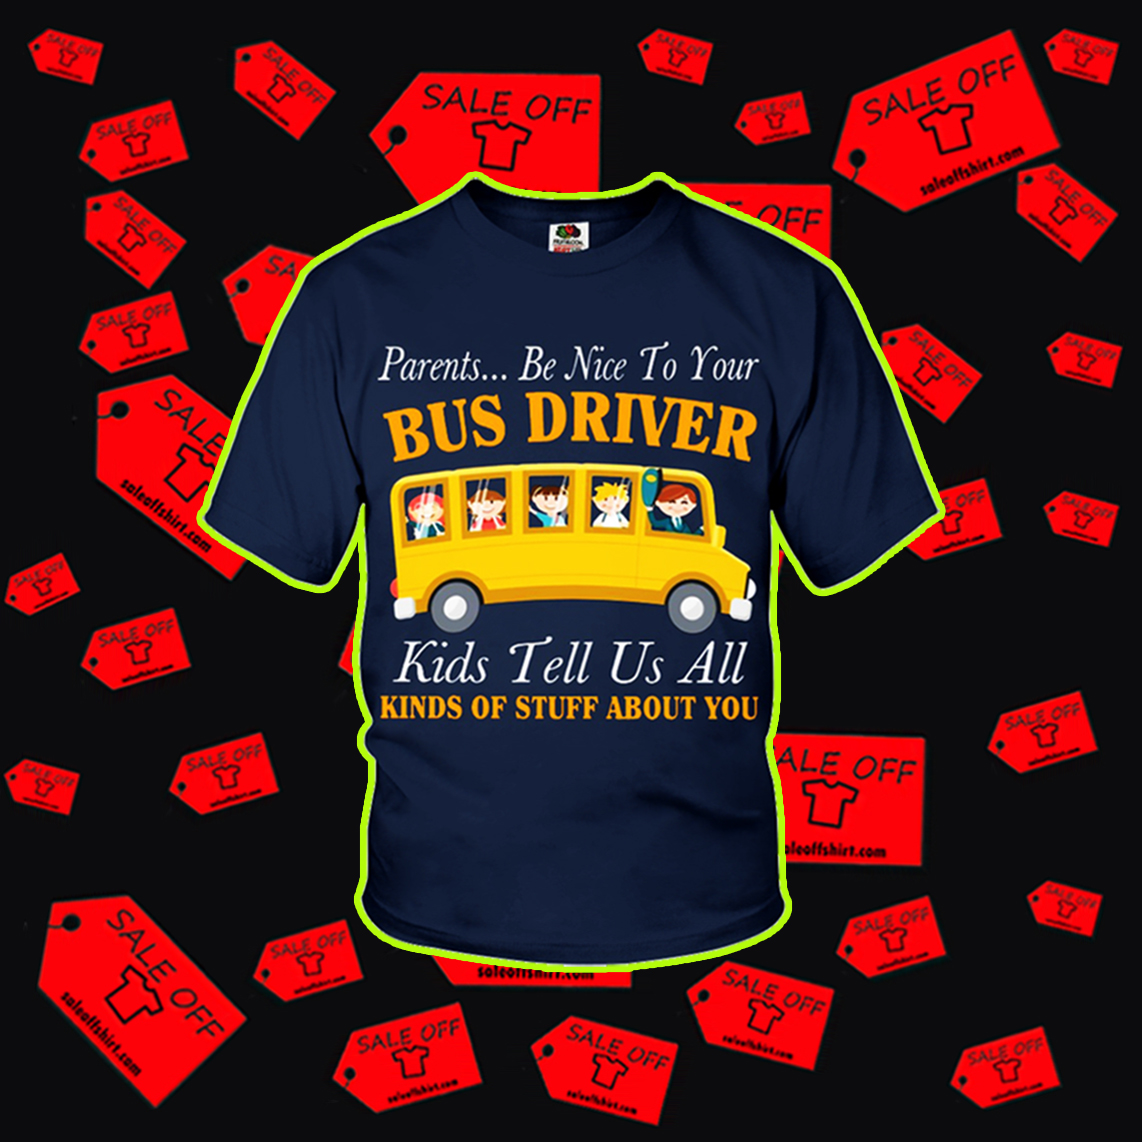 Parents be nice to your bus driver kids tell us all youth t-shirt